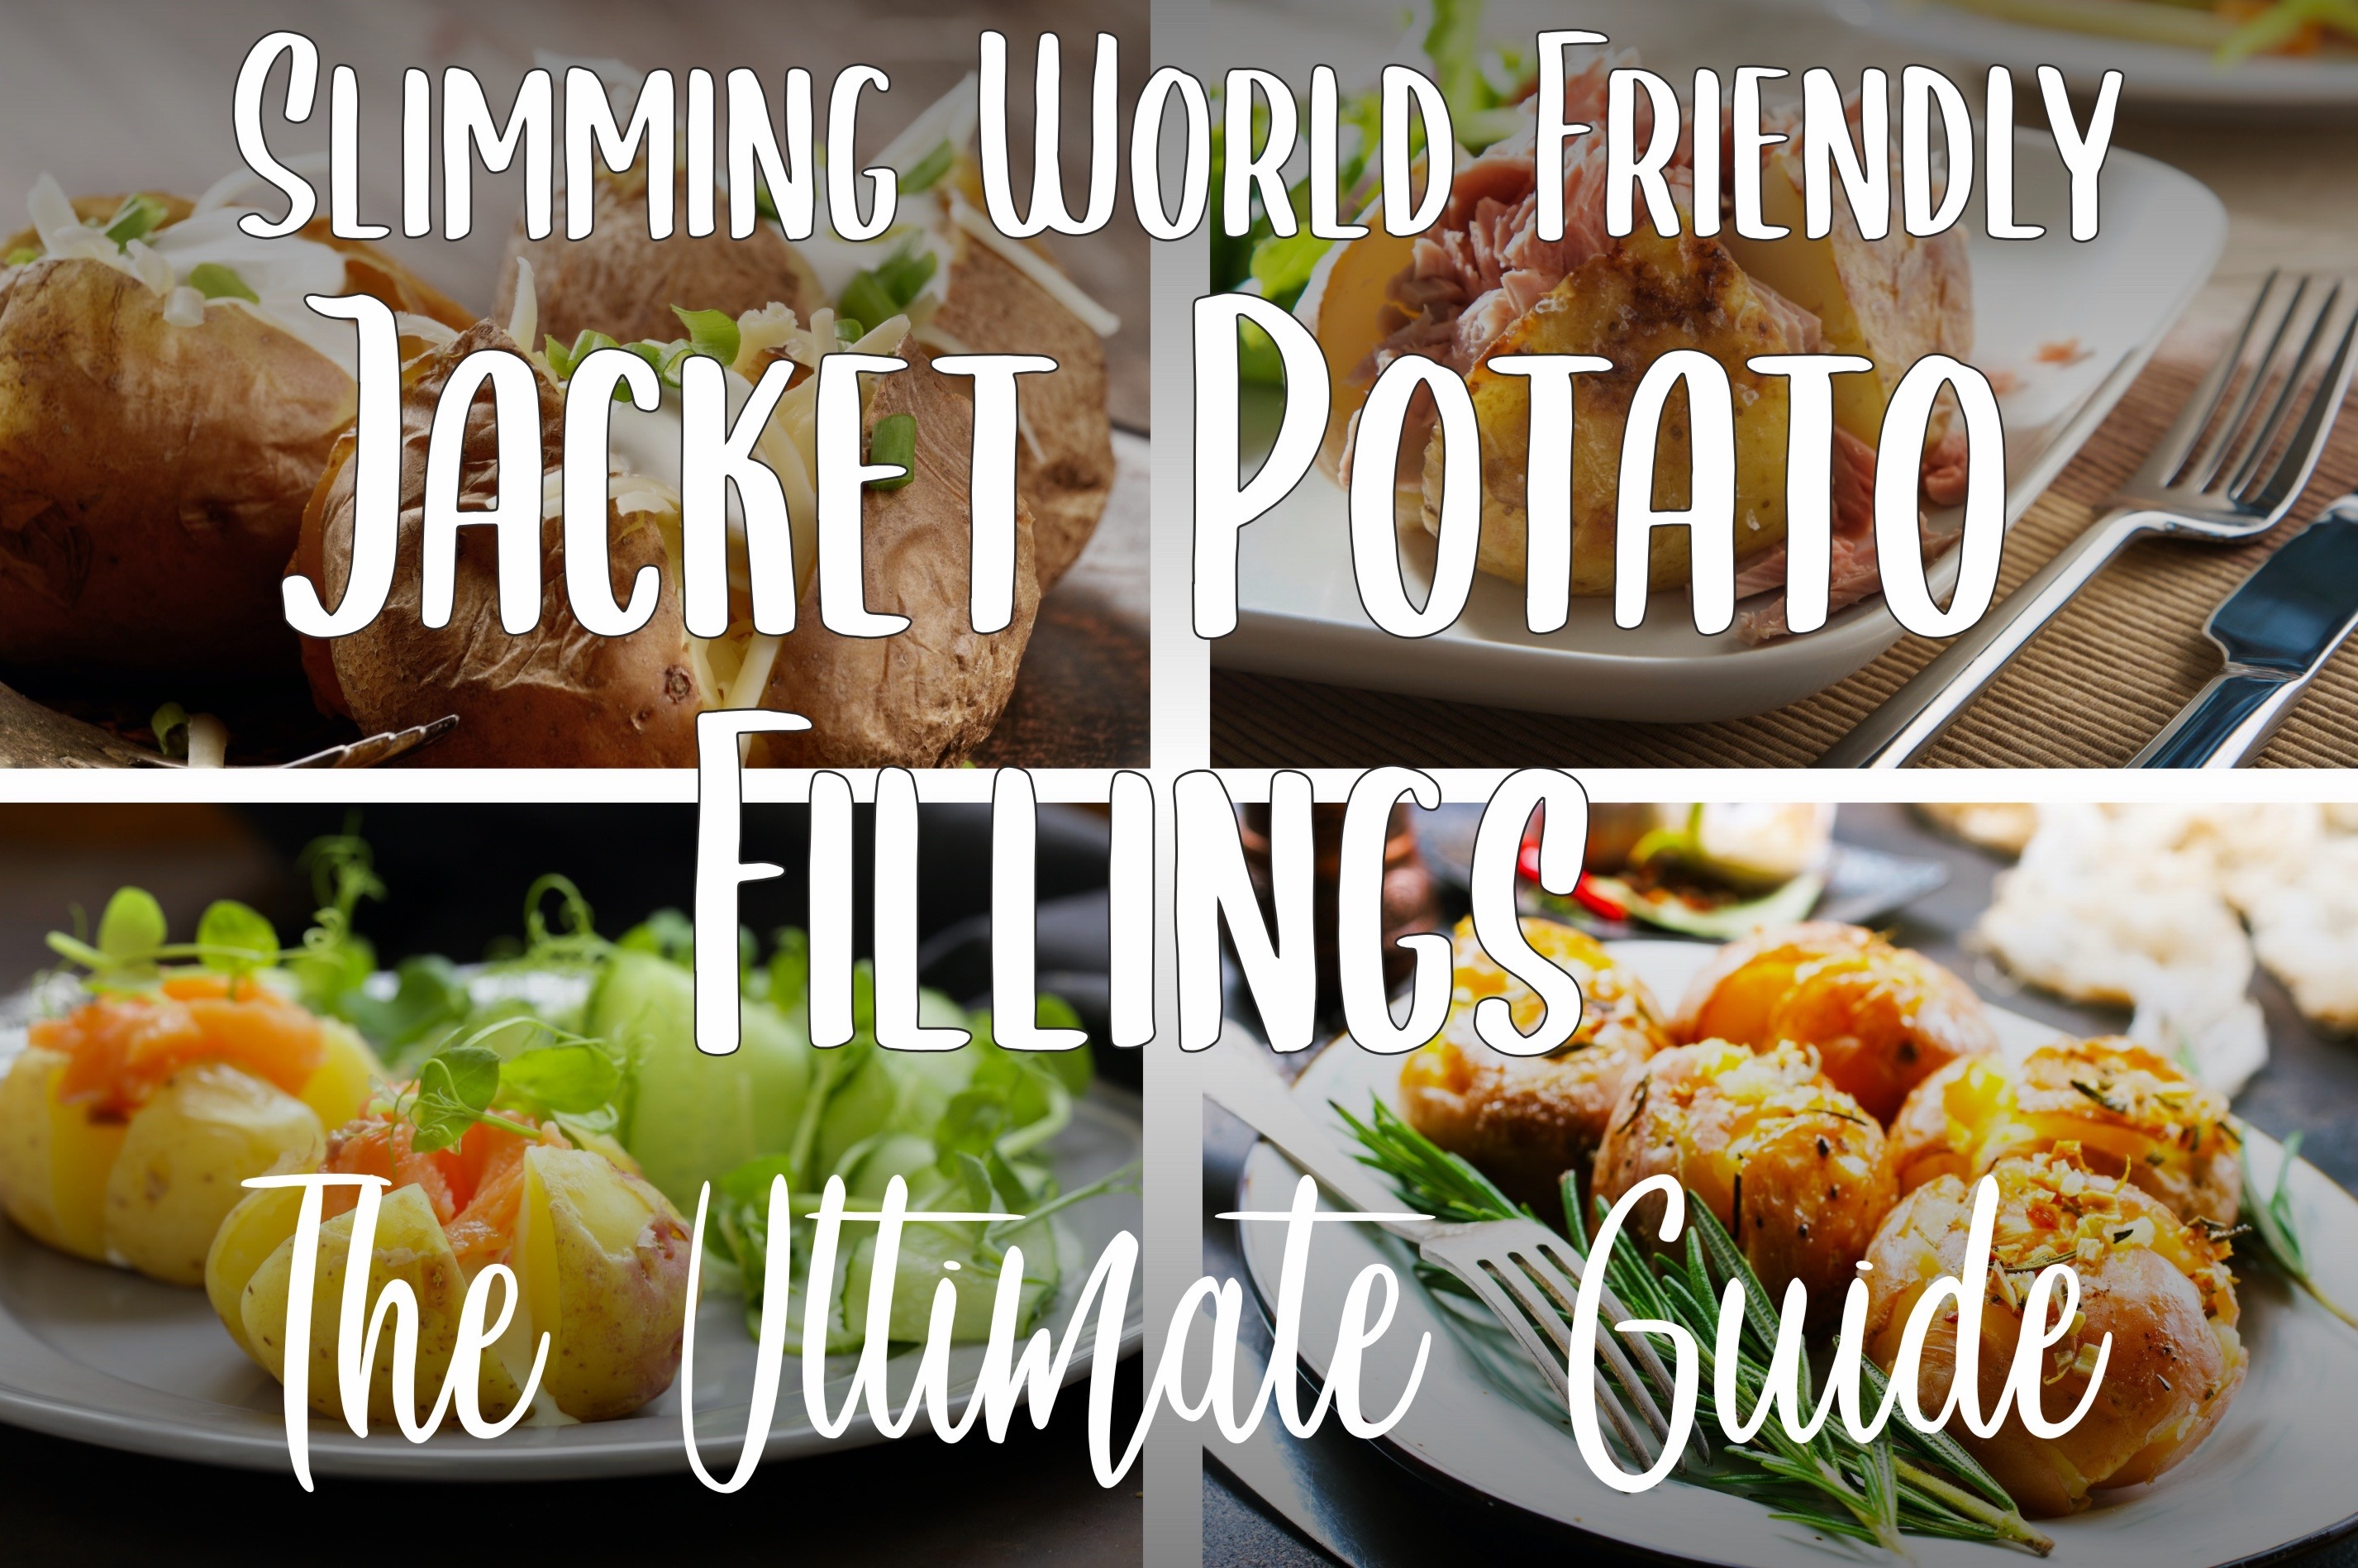 Slimming World Friendly Jacket Potato Fillings The